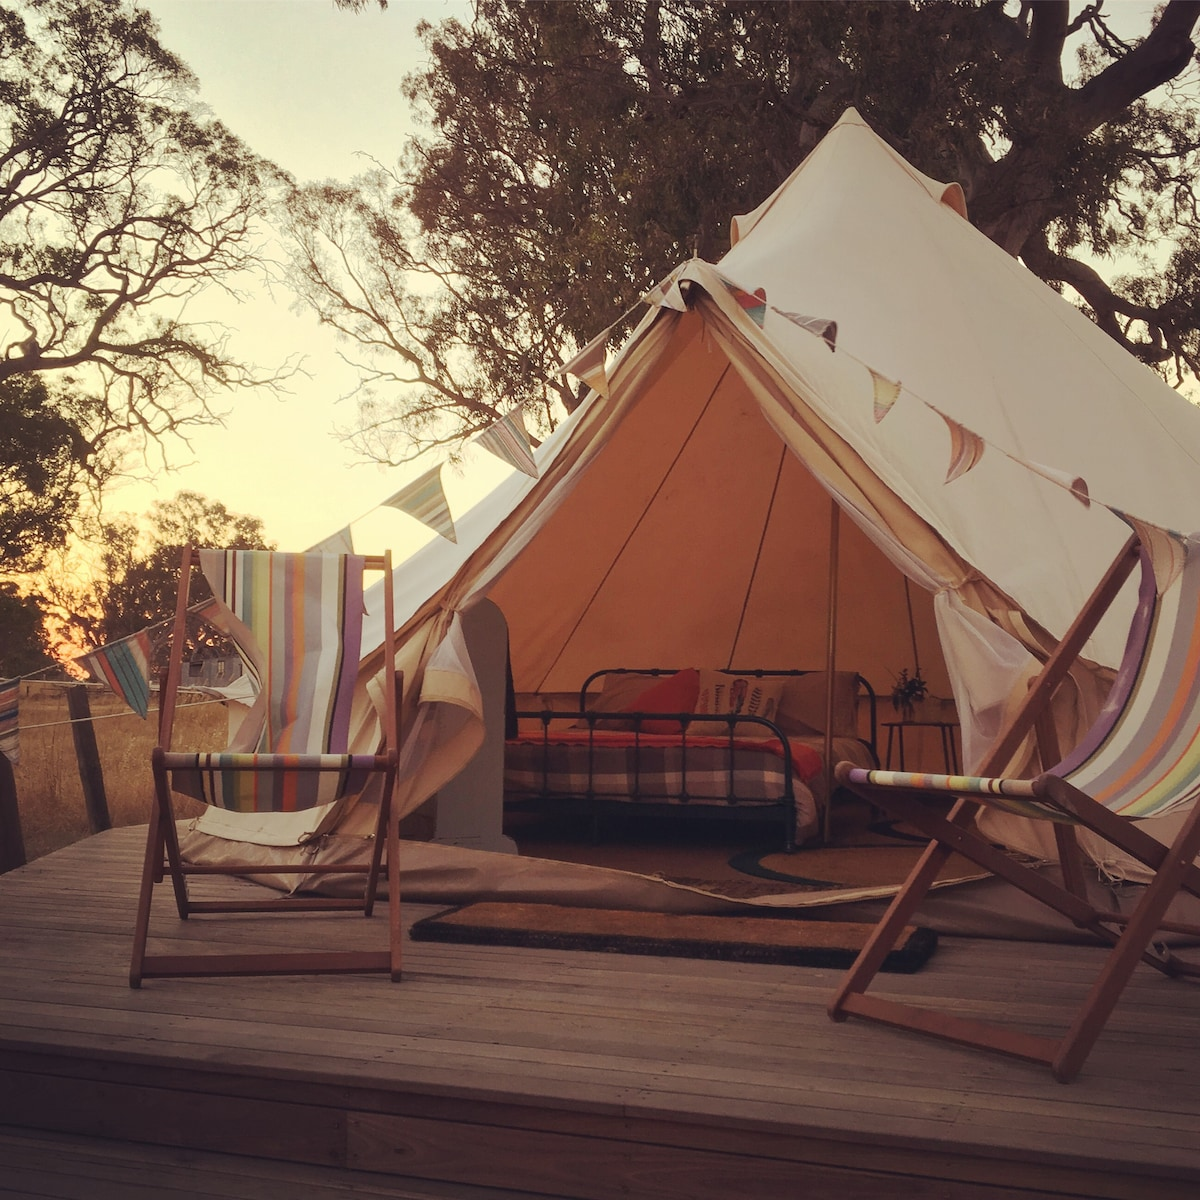 Gl&ing Bell tents at Bellwether winery - Tents for Rent in Coonawarra South Australia Australia & Glamping Bell tents at Bellwether winery - Tents for Rent in ...